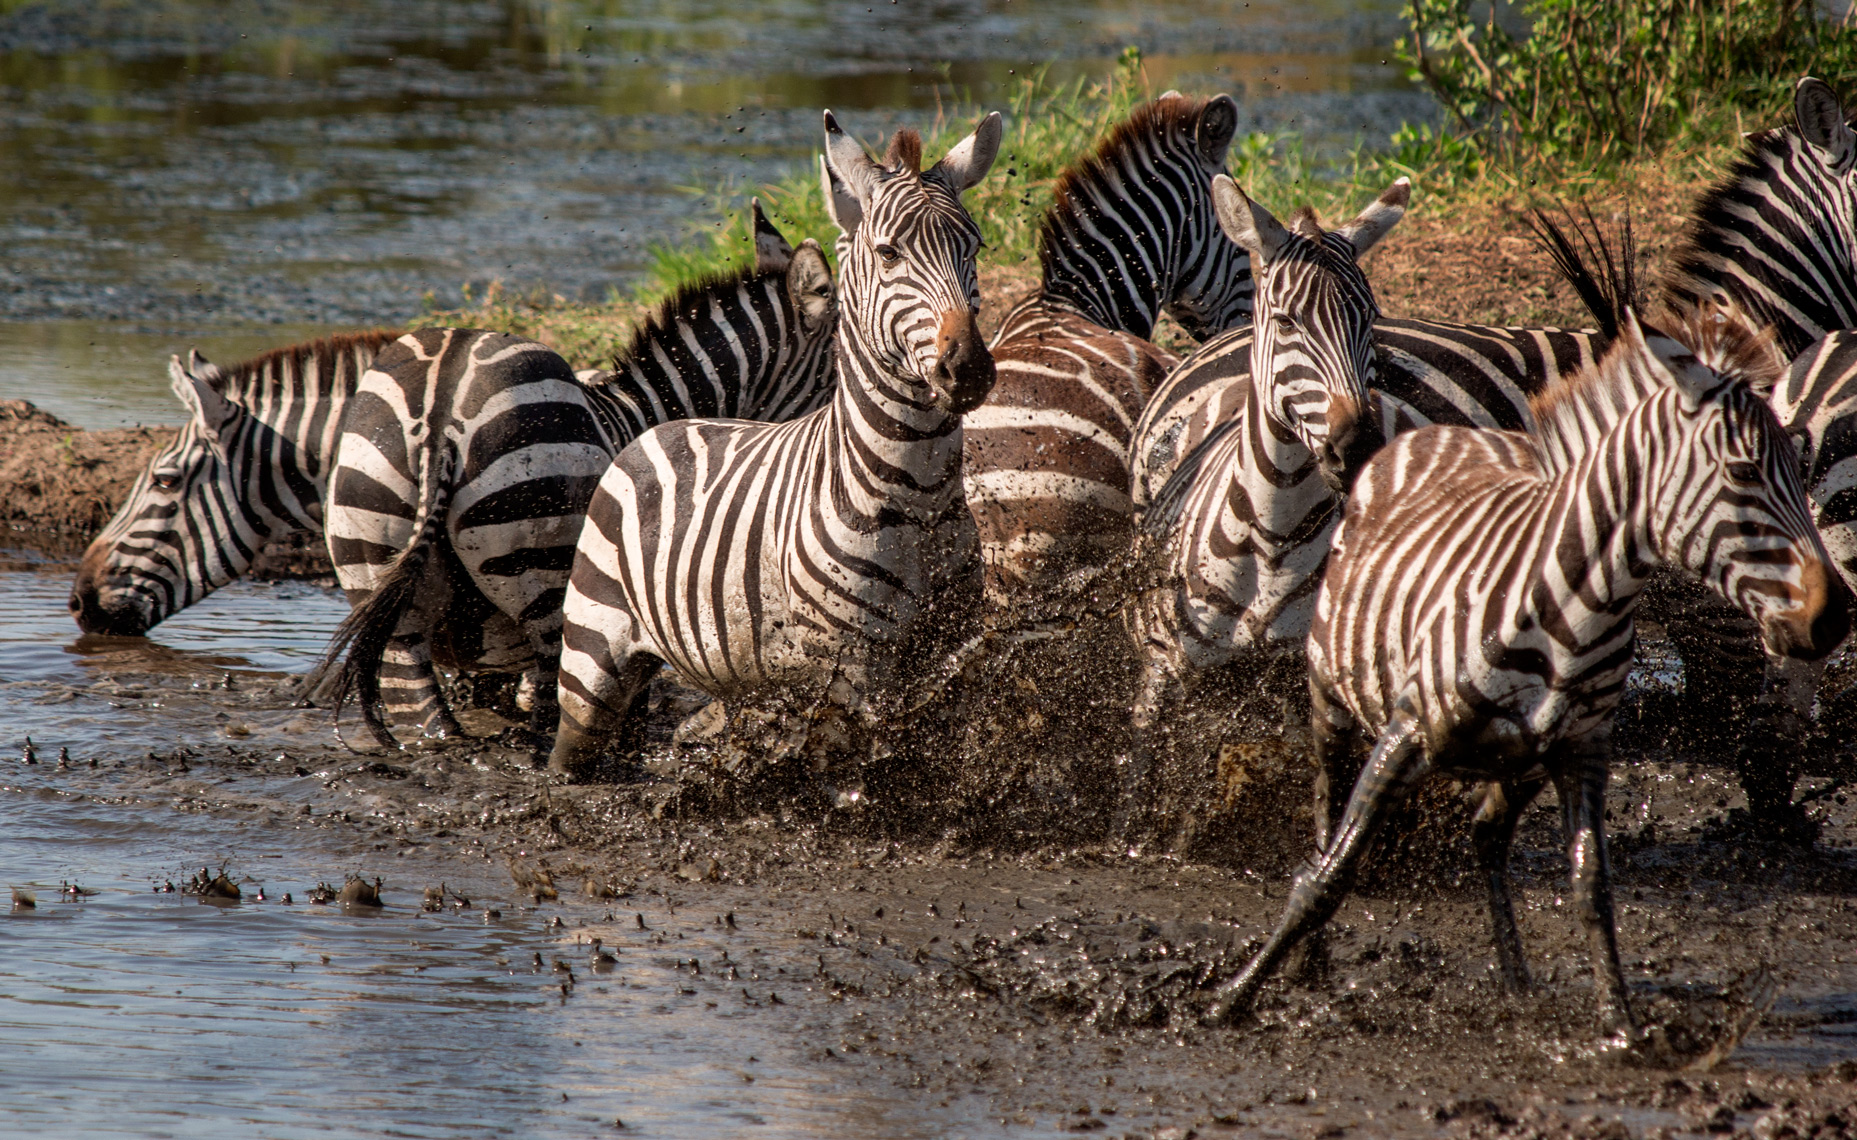 Zebras fleeing